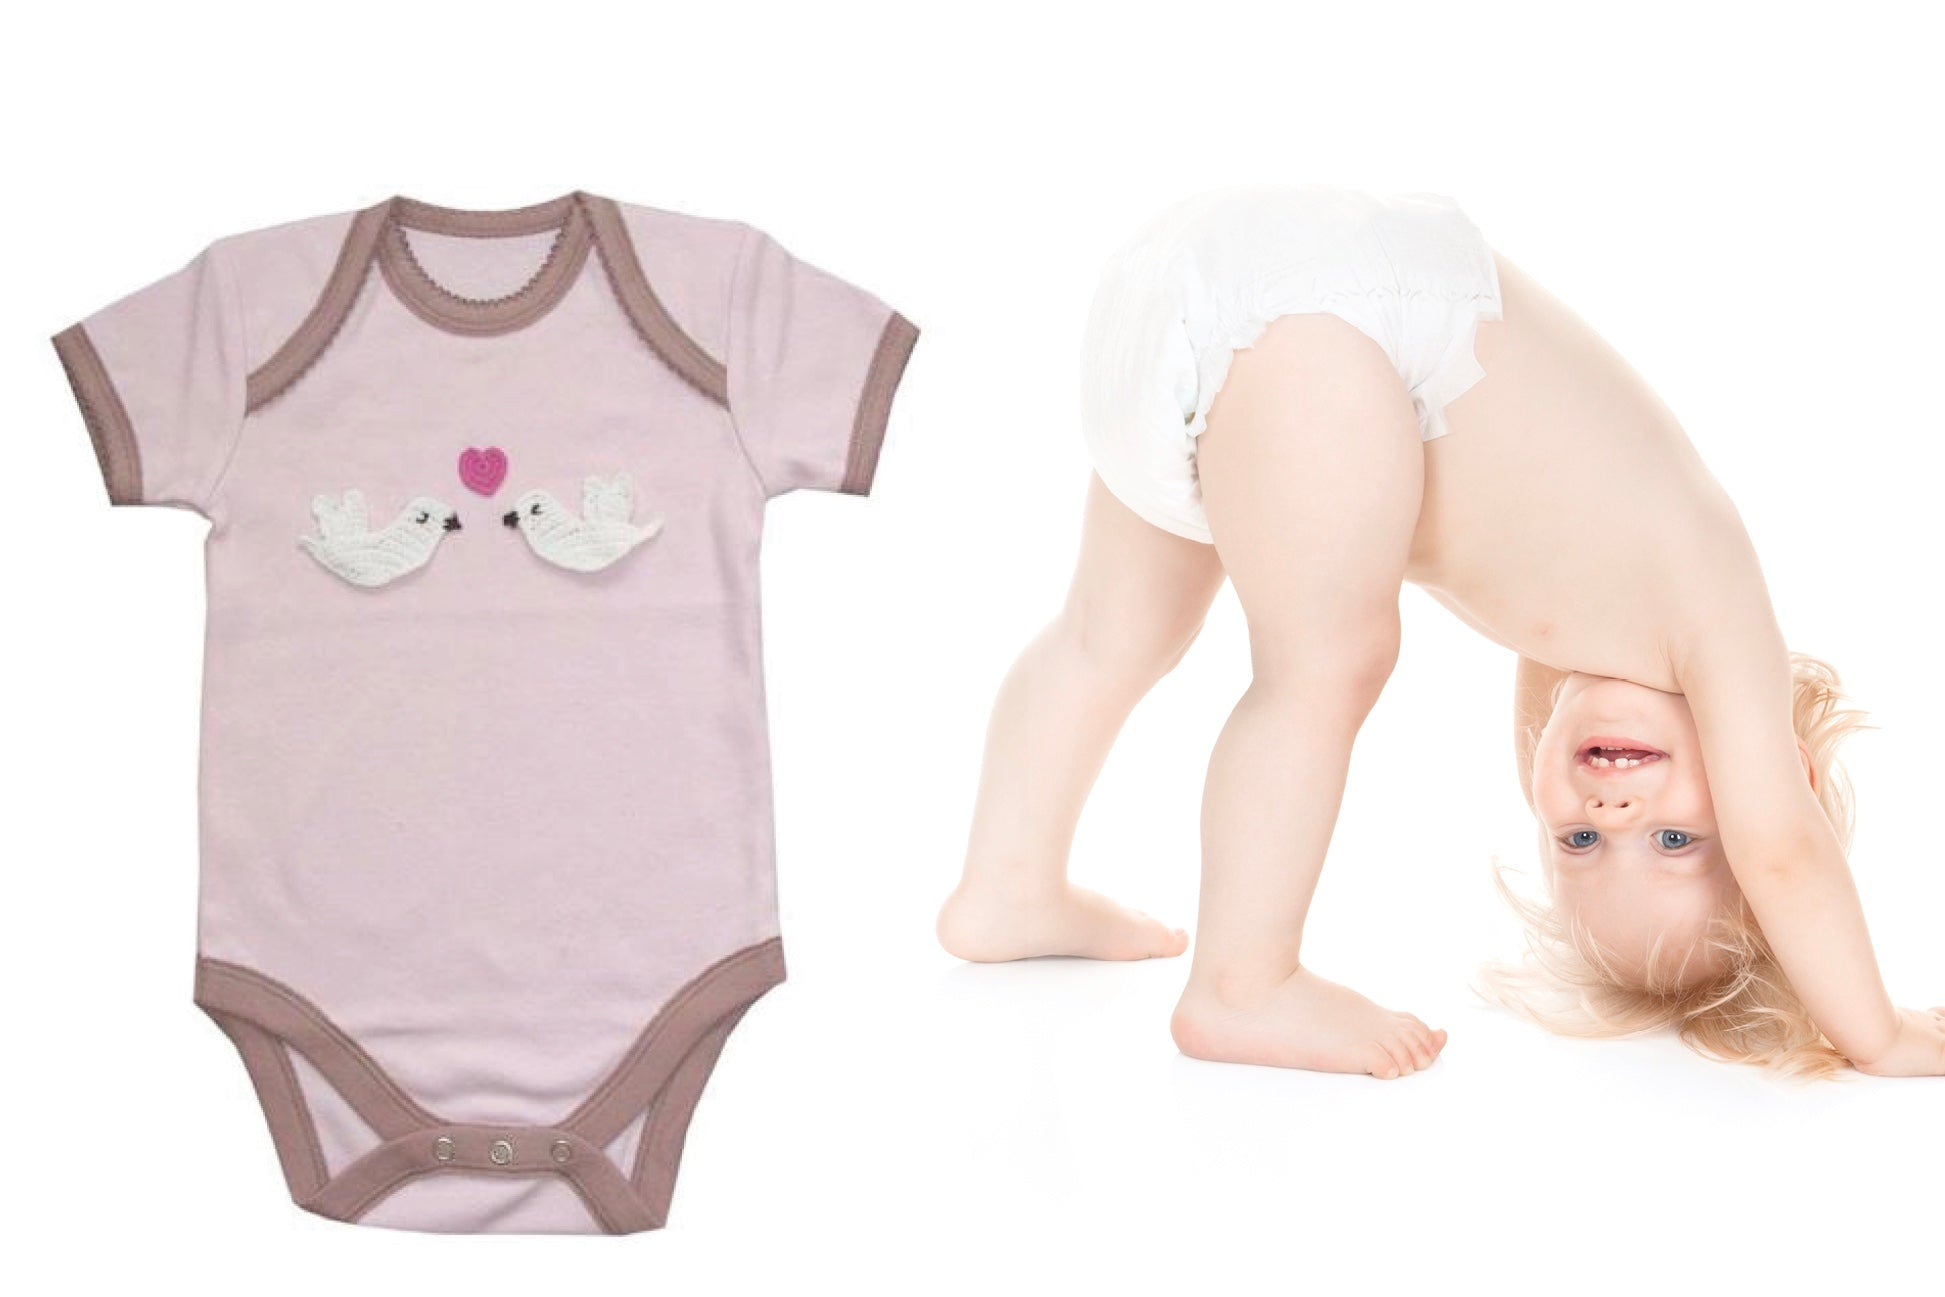 Baby clothing for your children